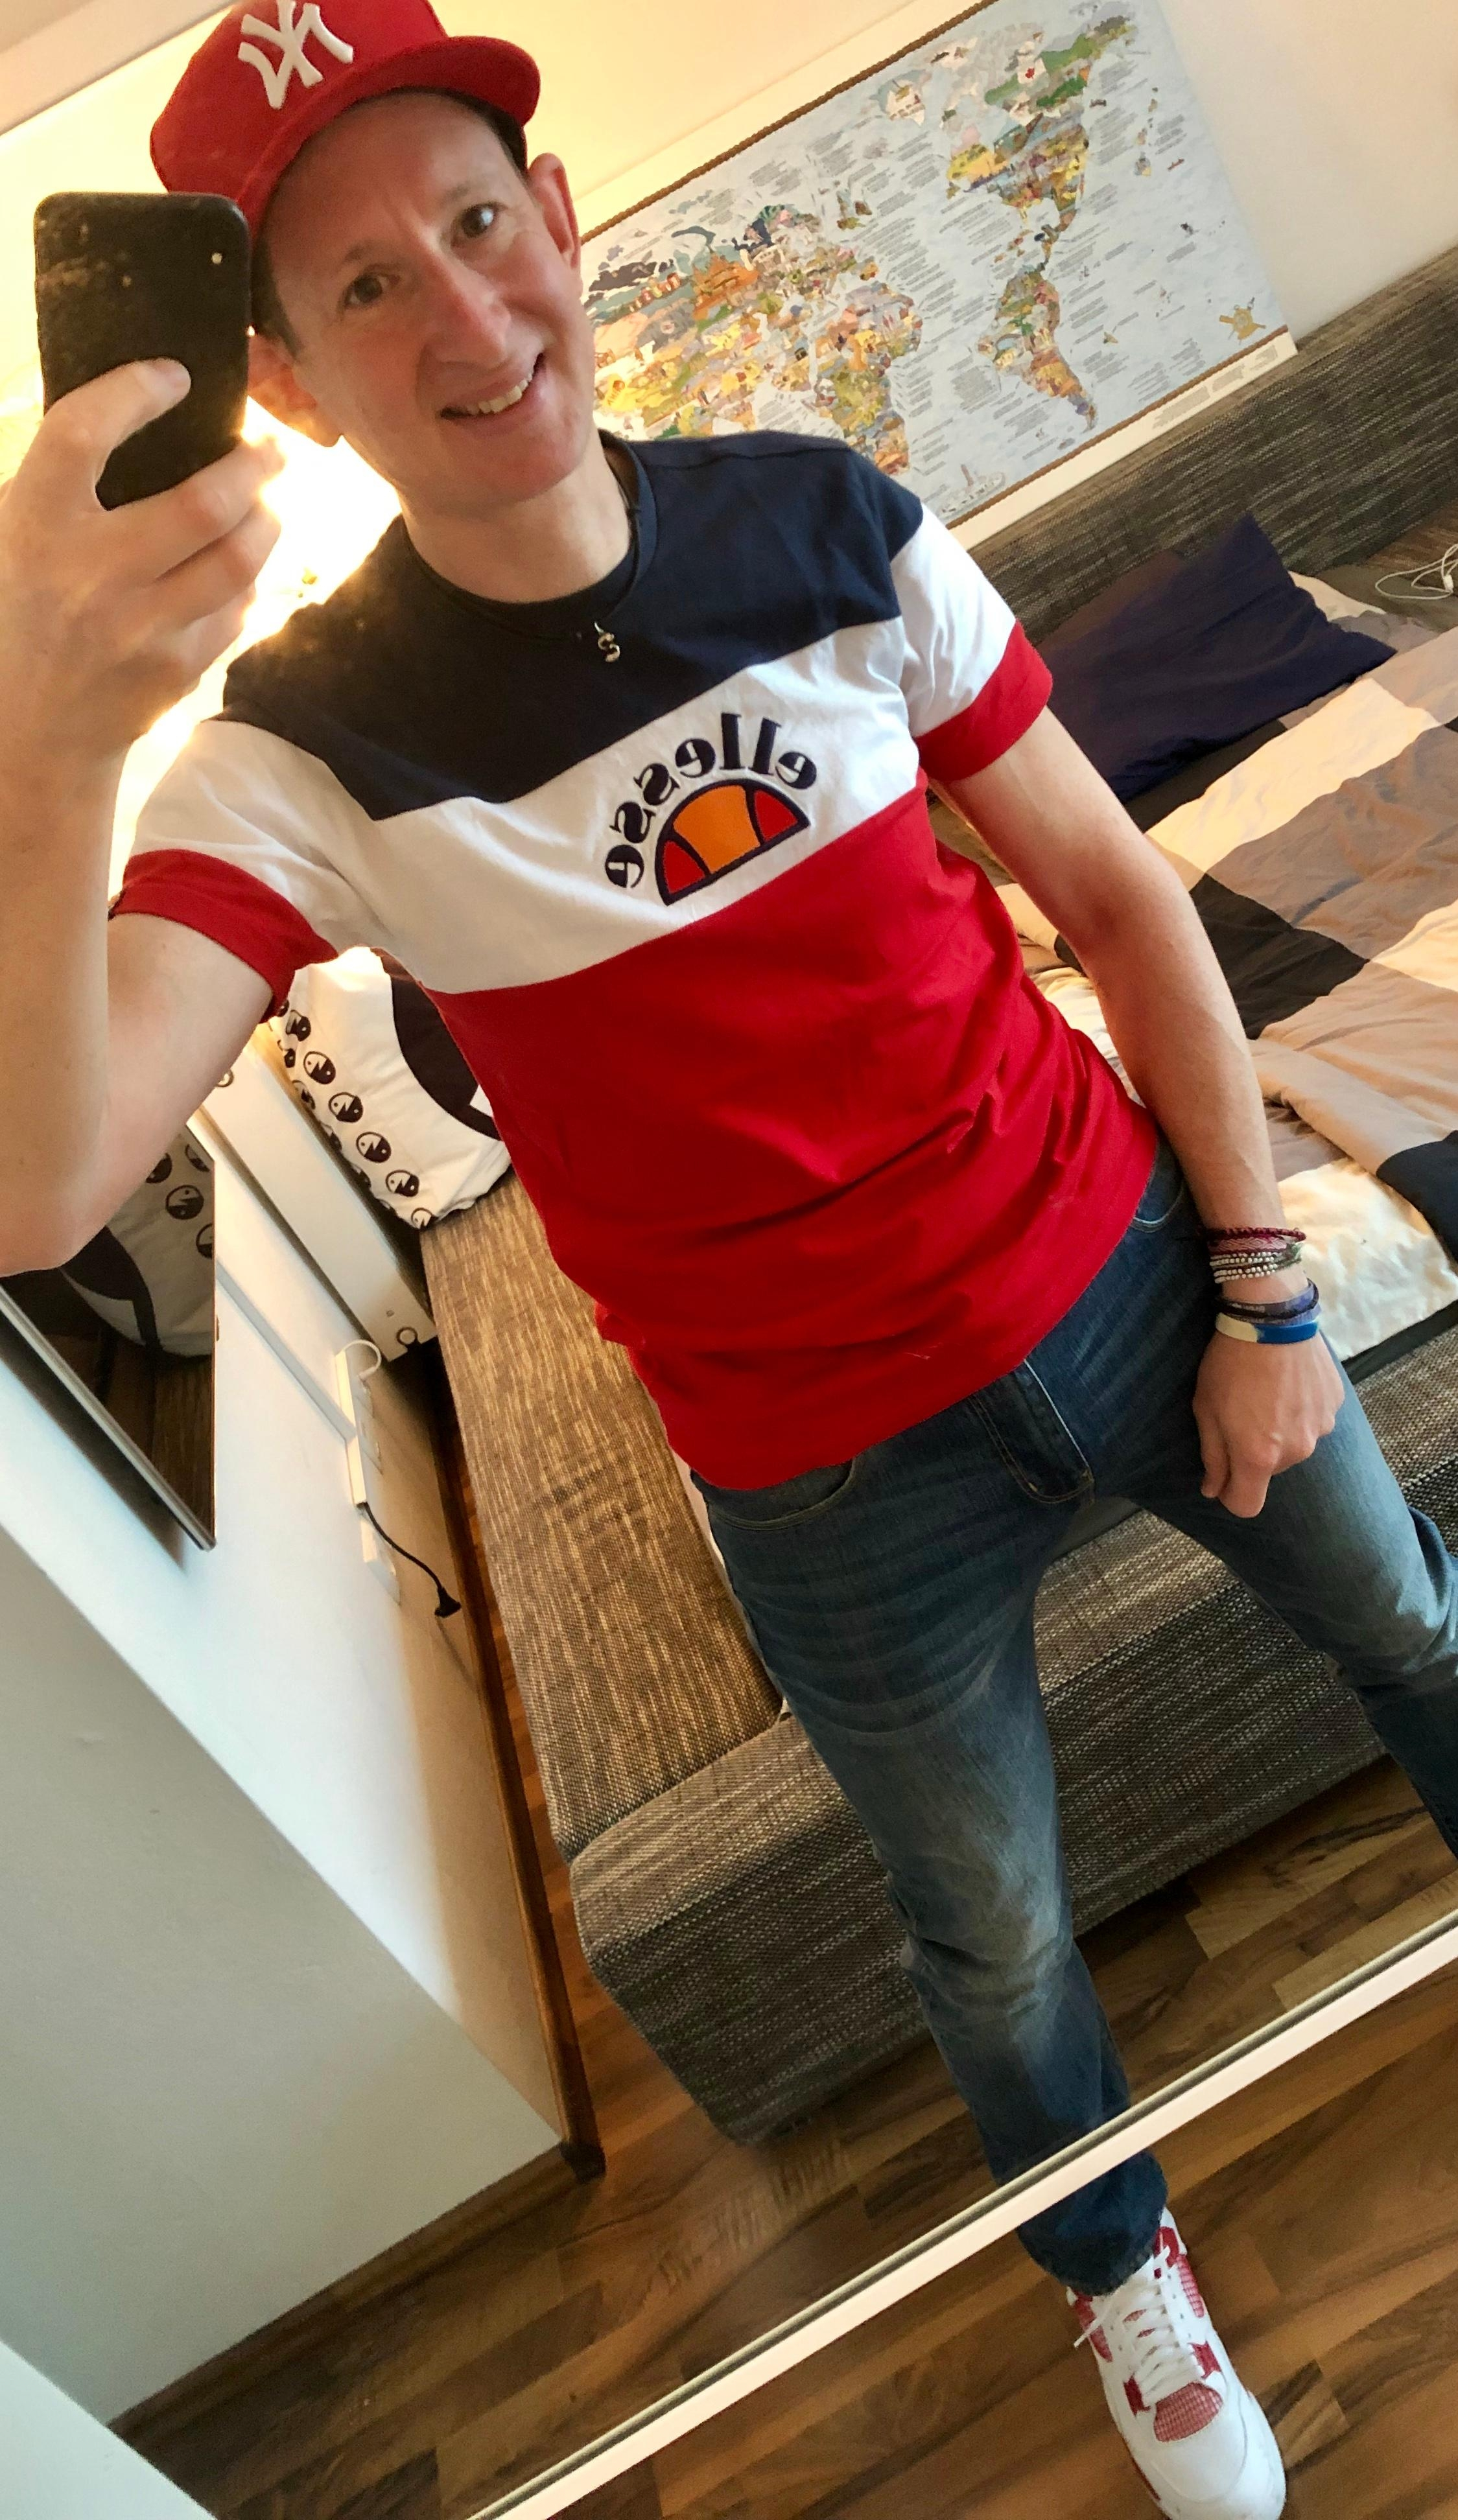 Today is my Day Off! Bis morgen Anzug & Krawatte! :) #Ootd #Fashionchallenge #Casual #Ellesse #ArmaniJeans #Nike #NewEra